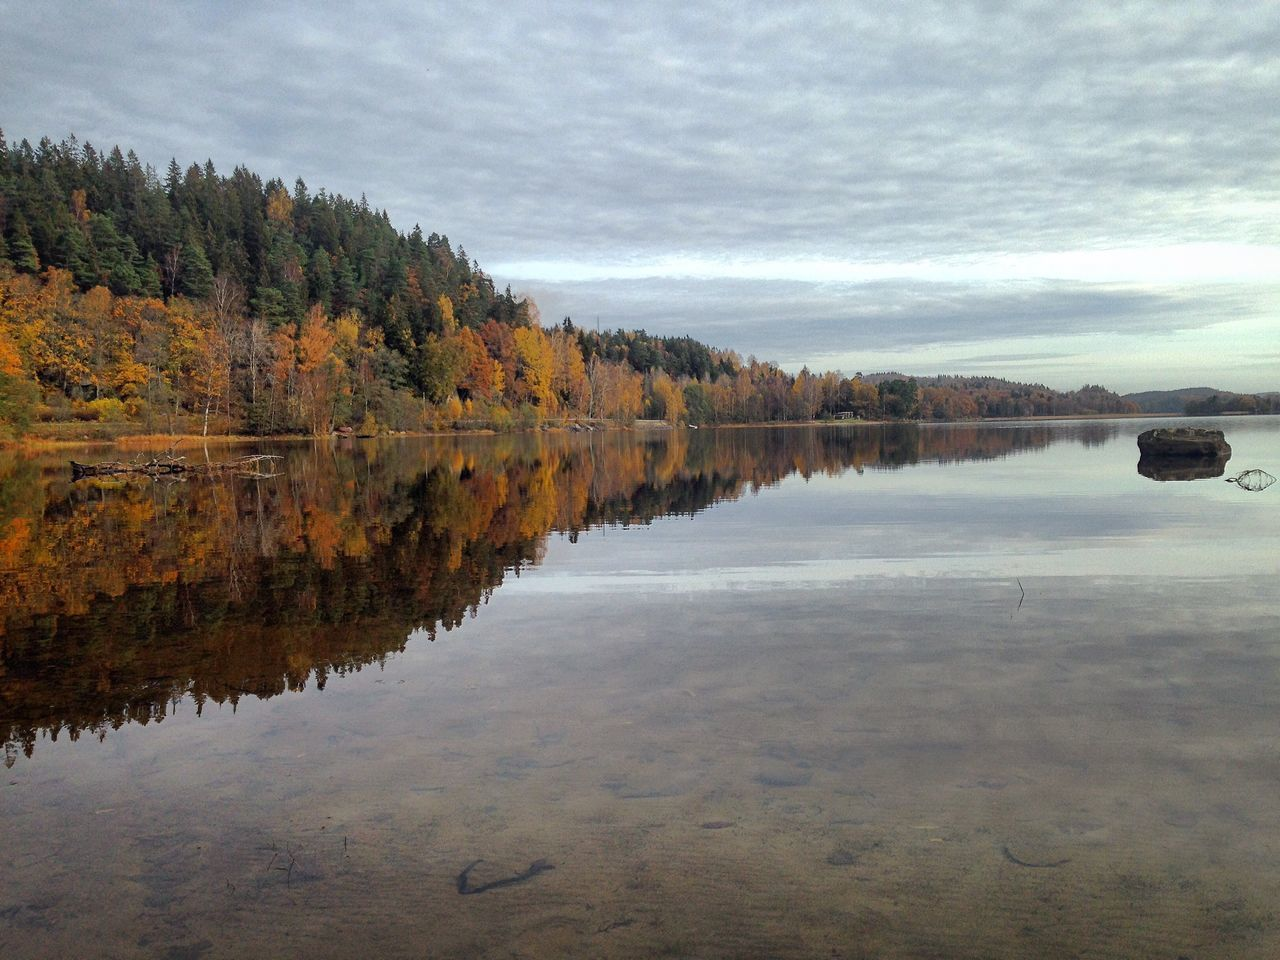 Autumn Lake Reflection . Nature Sweden Outdoors LakeReflection Transparent Water IPhoneography Iphone6s Mobilephotography